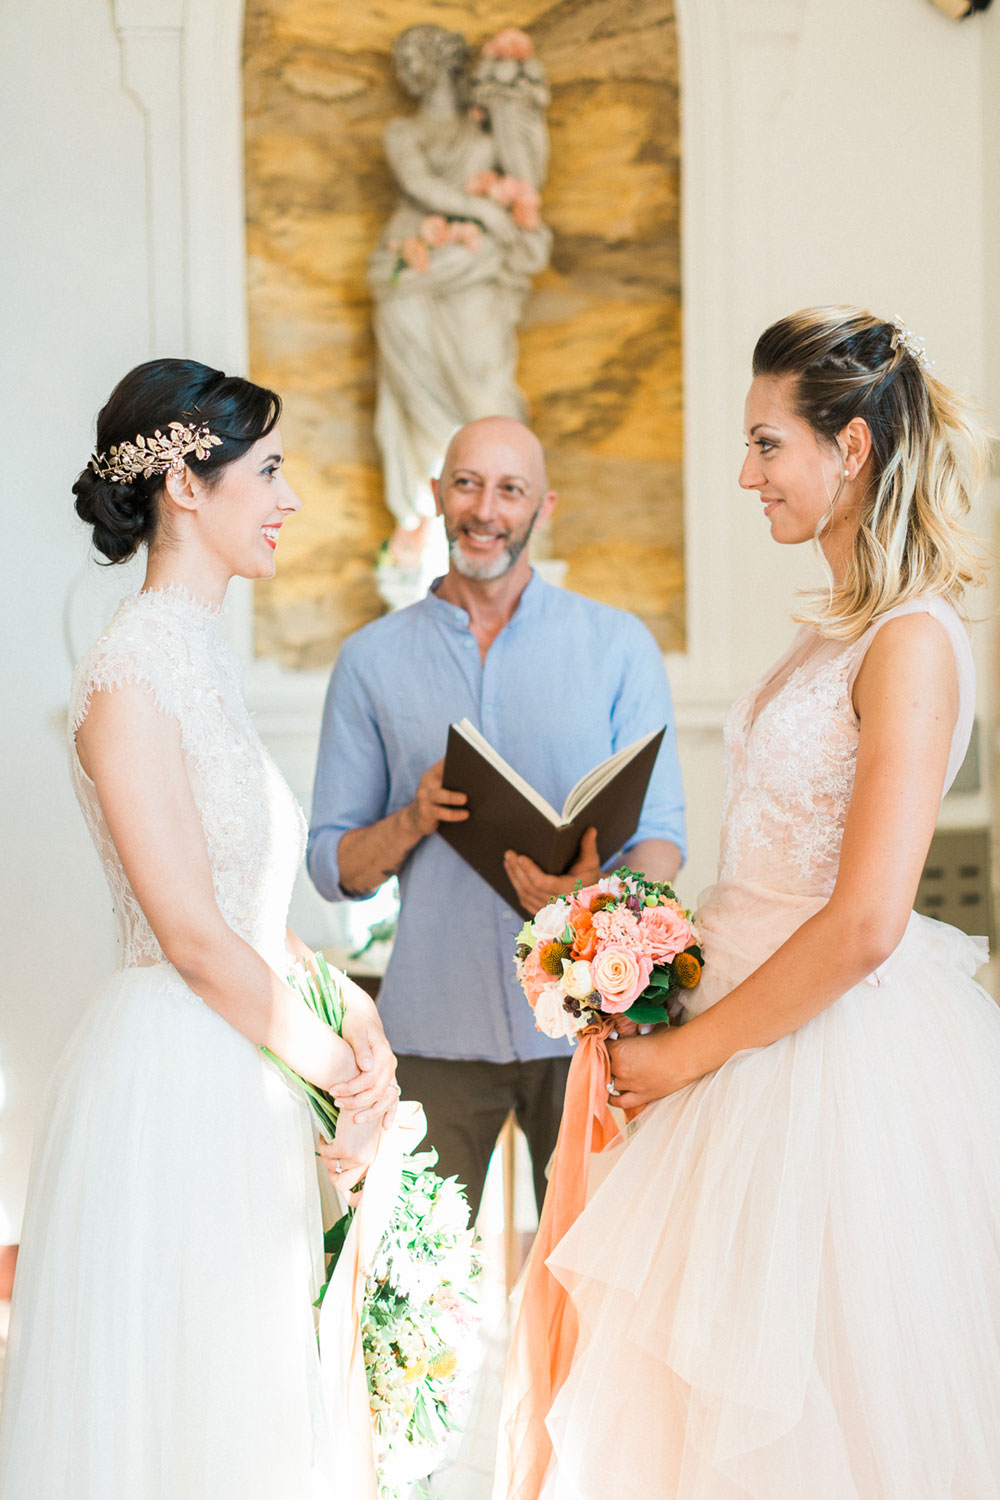 Linari-Tuscany-Elopement-Courtney-Michaela-140